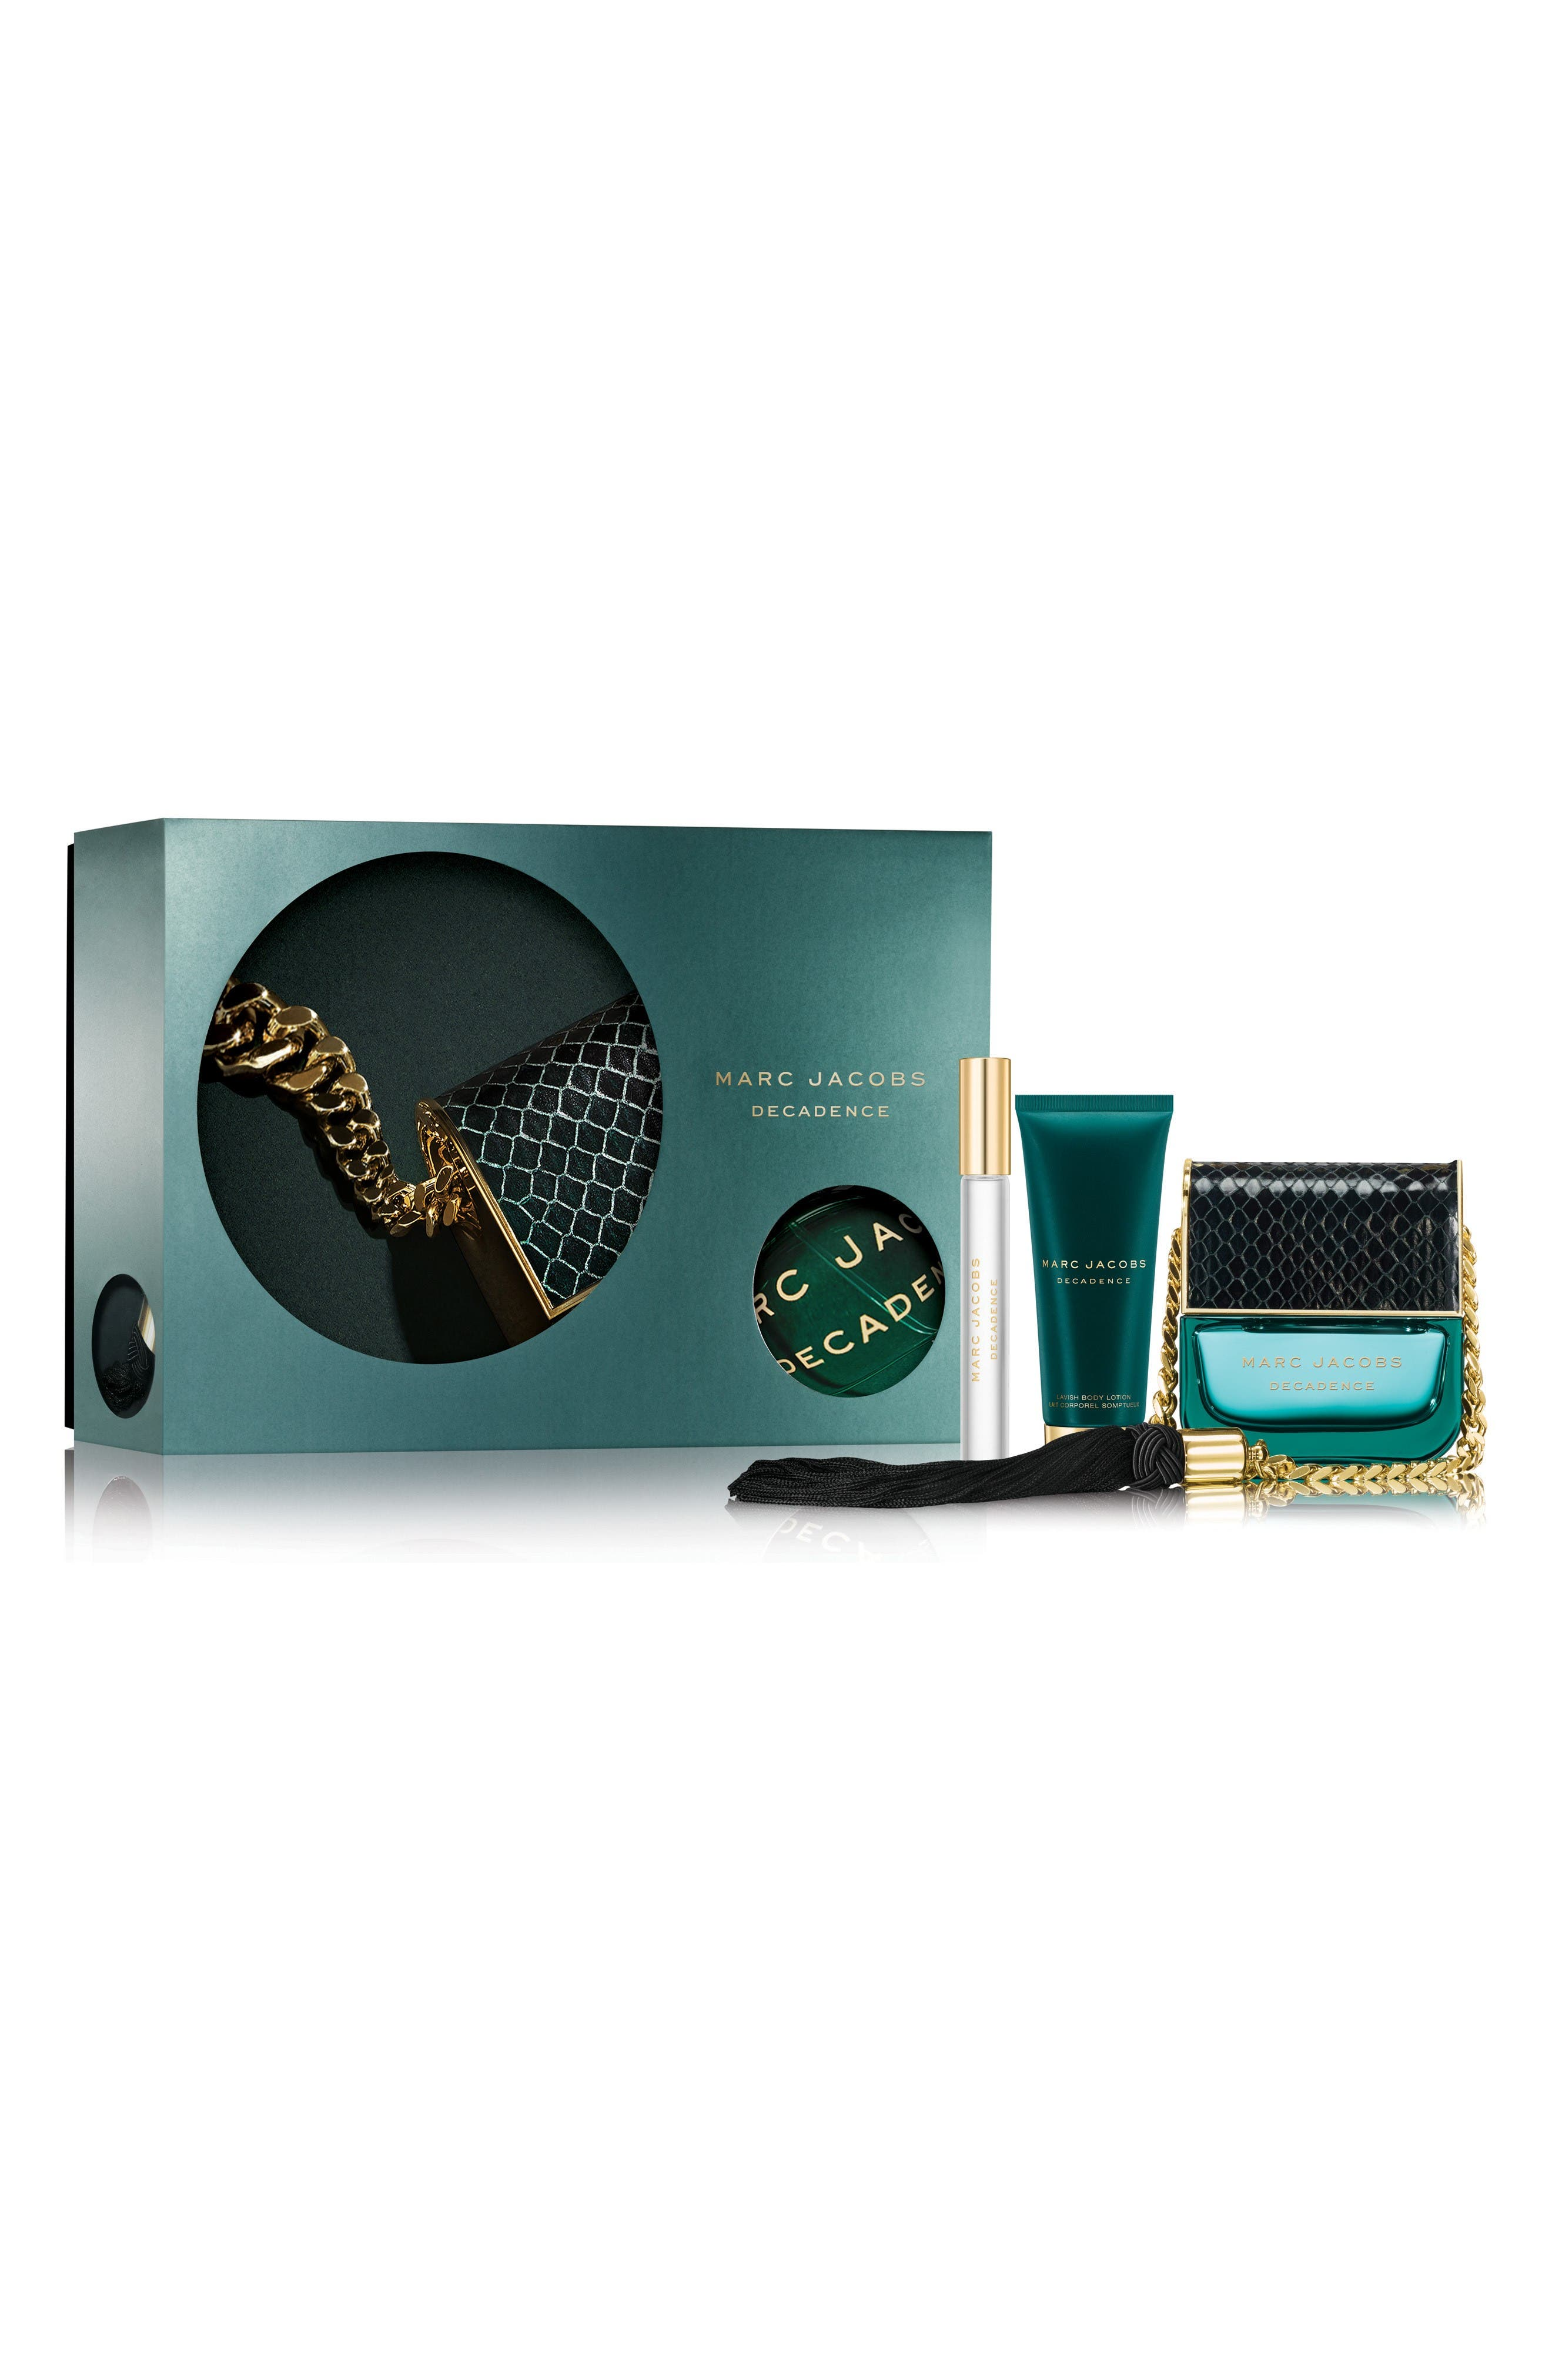 Main Image - MARC JACOBS Decadence Set (Limited Edition) ($177 Value)